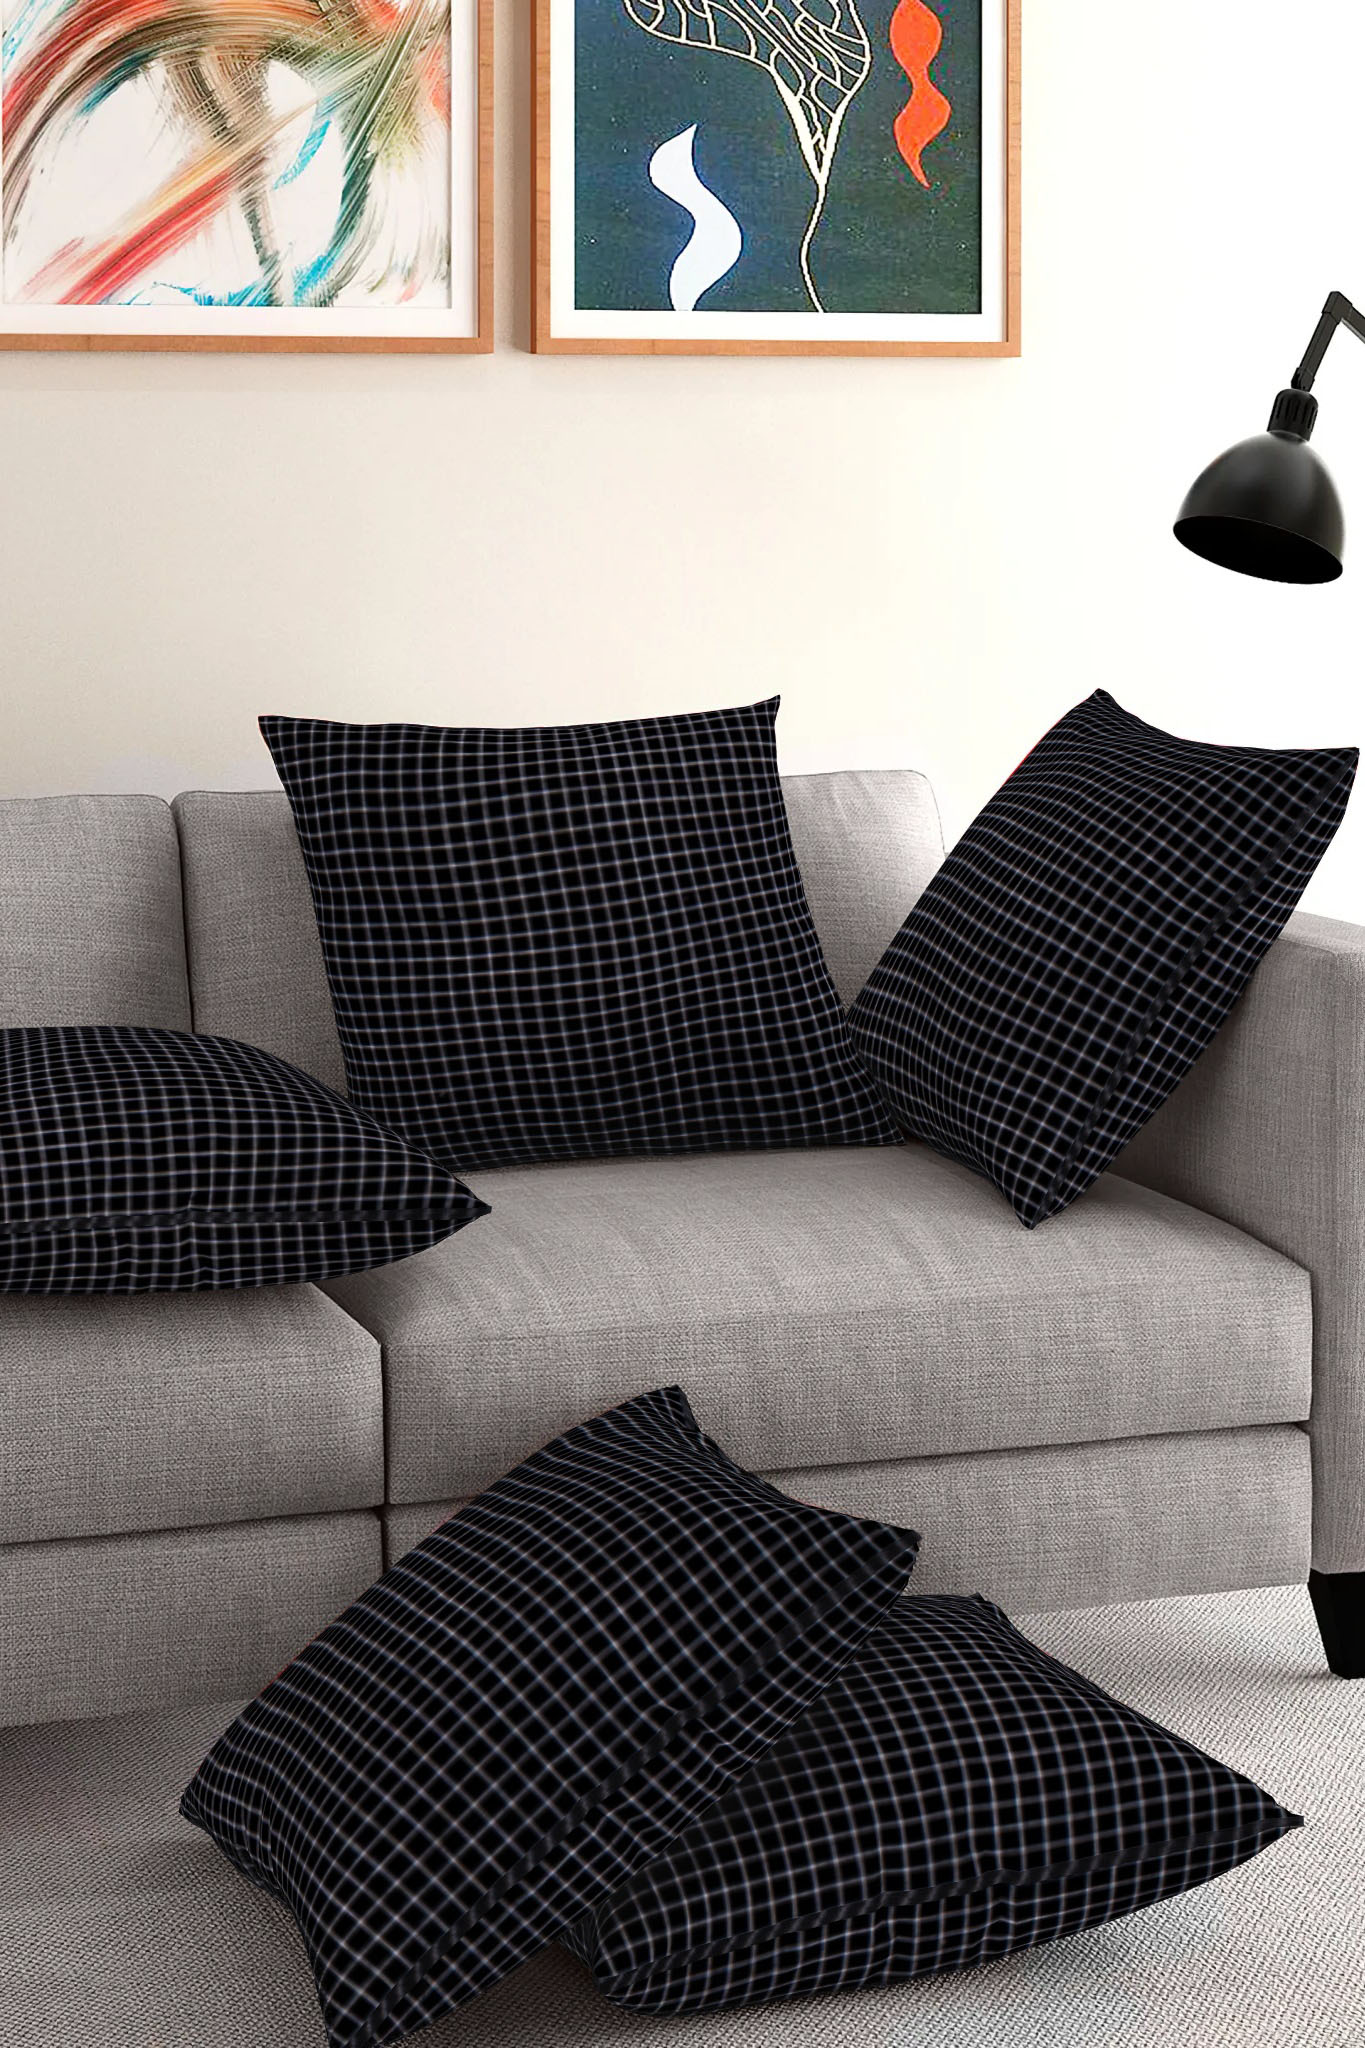 Set of 5-Black White Cotton Cushion Cover-35410-16x16 Inches